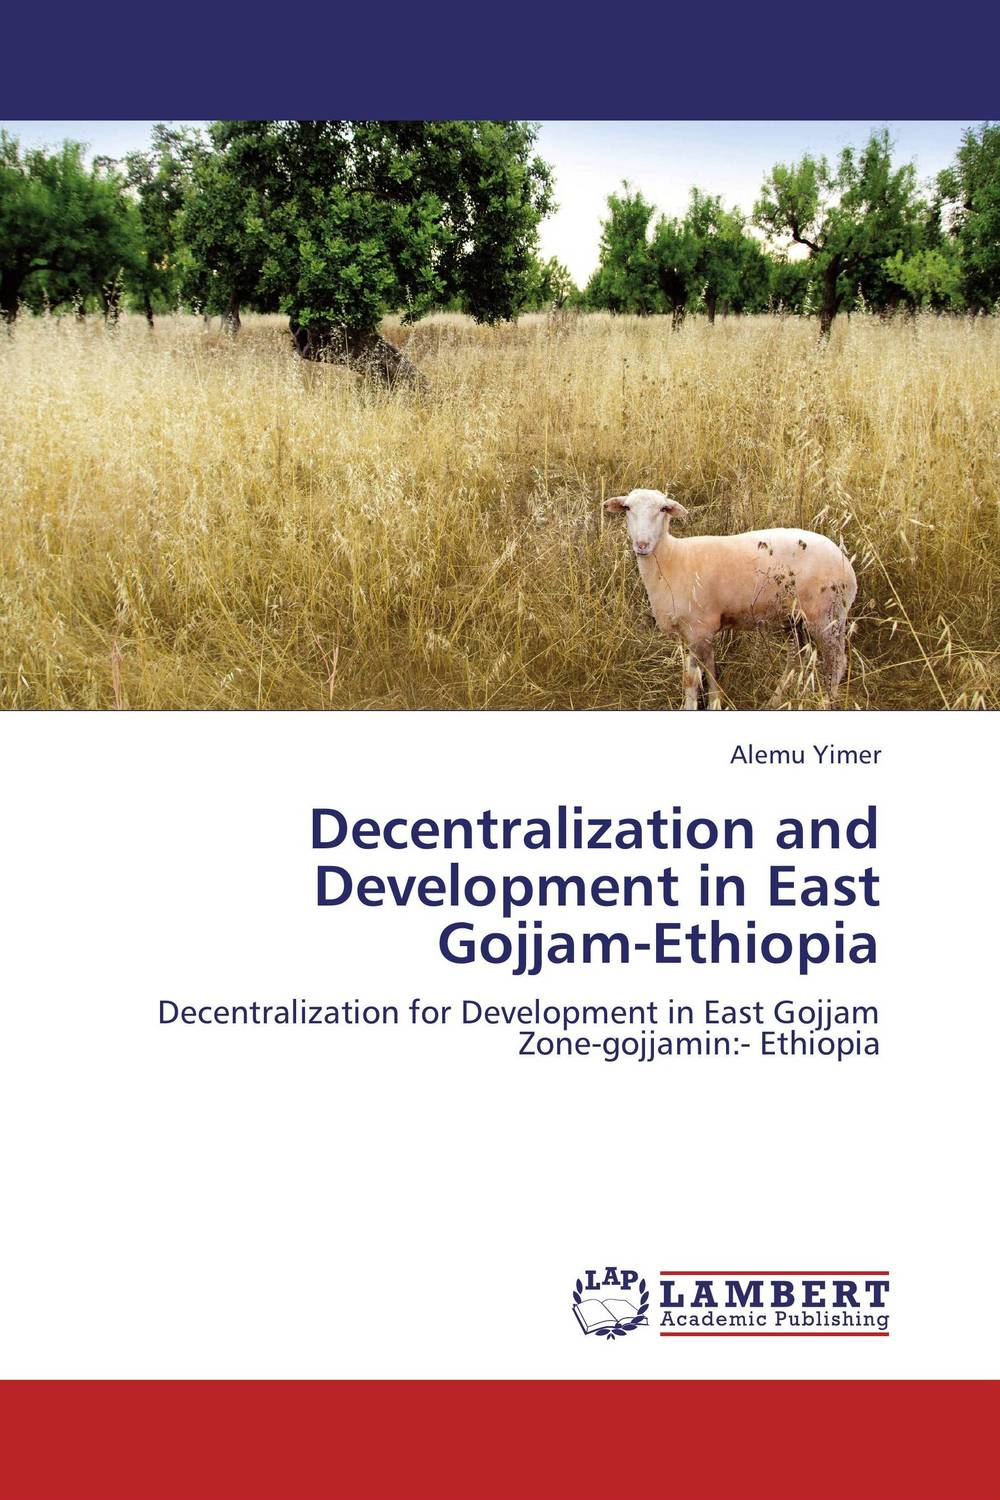 Decentralization and Development in East Gojjam-Ethiopia the challenges of decentralization in promoting citizen participation